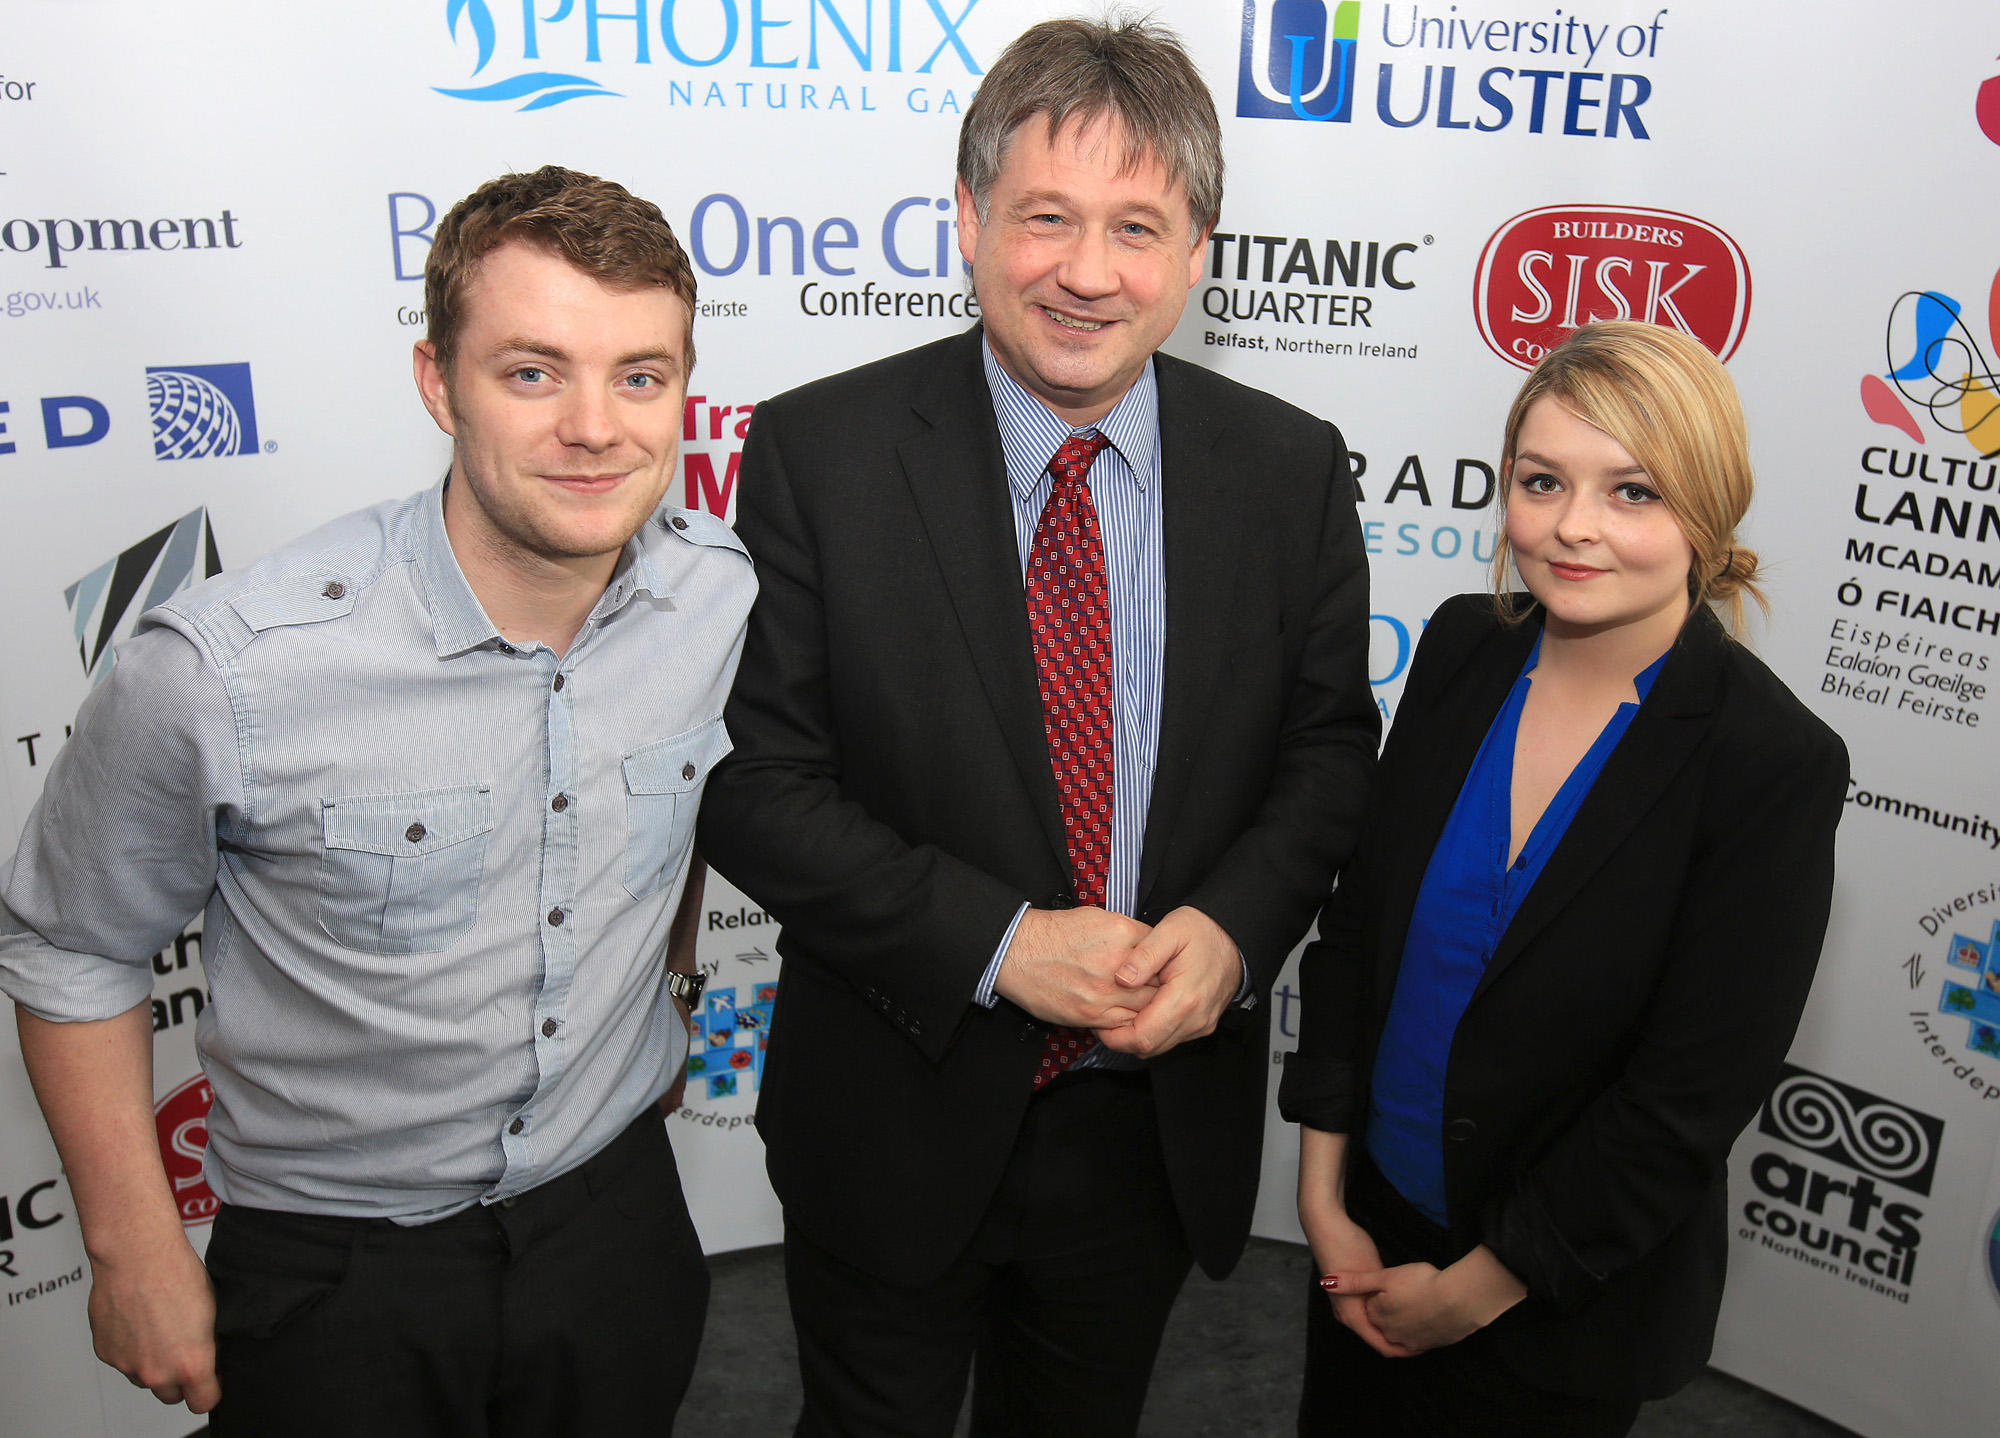 Belfast MET E3, One City Conference 'Lifting the City' . pictured: Niall Greer (West Belfast Partnership), Basil McCrea MLA and Ruth McGennis (West Belfast Partnership) 95JC13